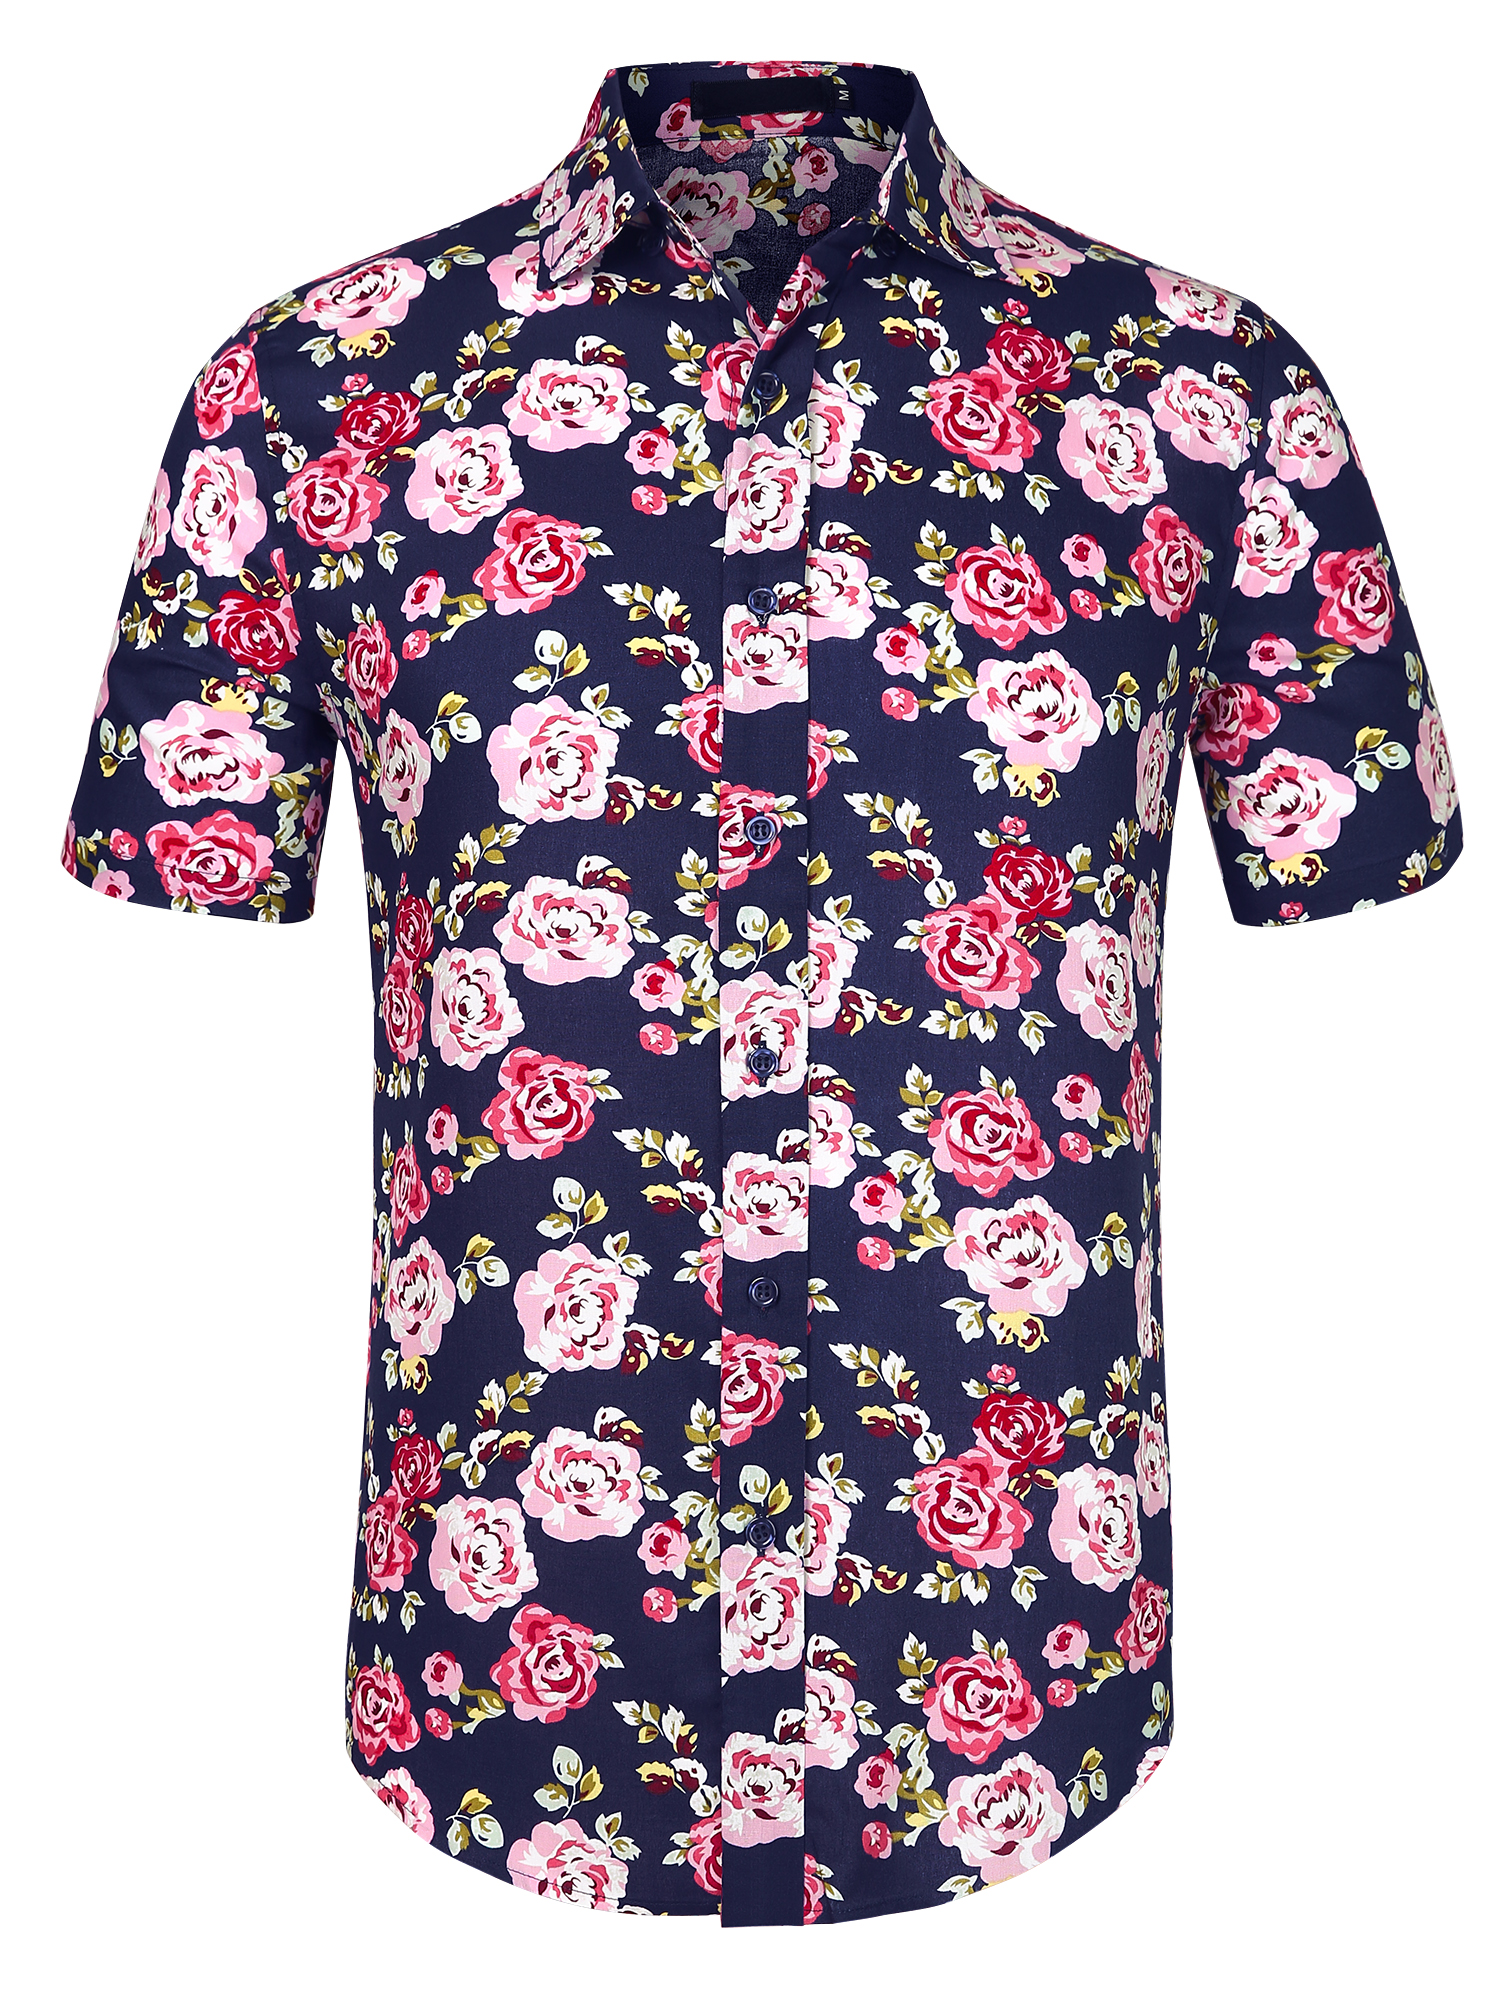 Men Slim Fit Floral Print Point Collar Short Sleeve Button Down Shirt Black Pink M